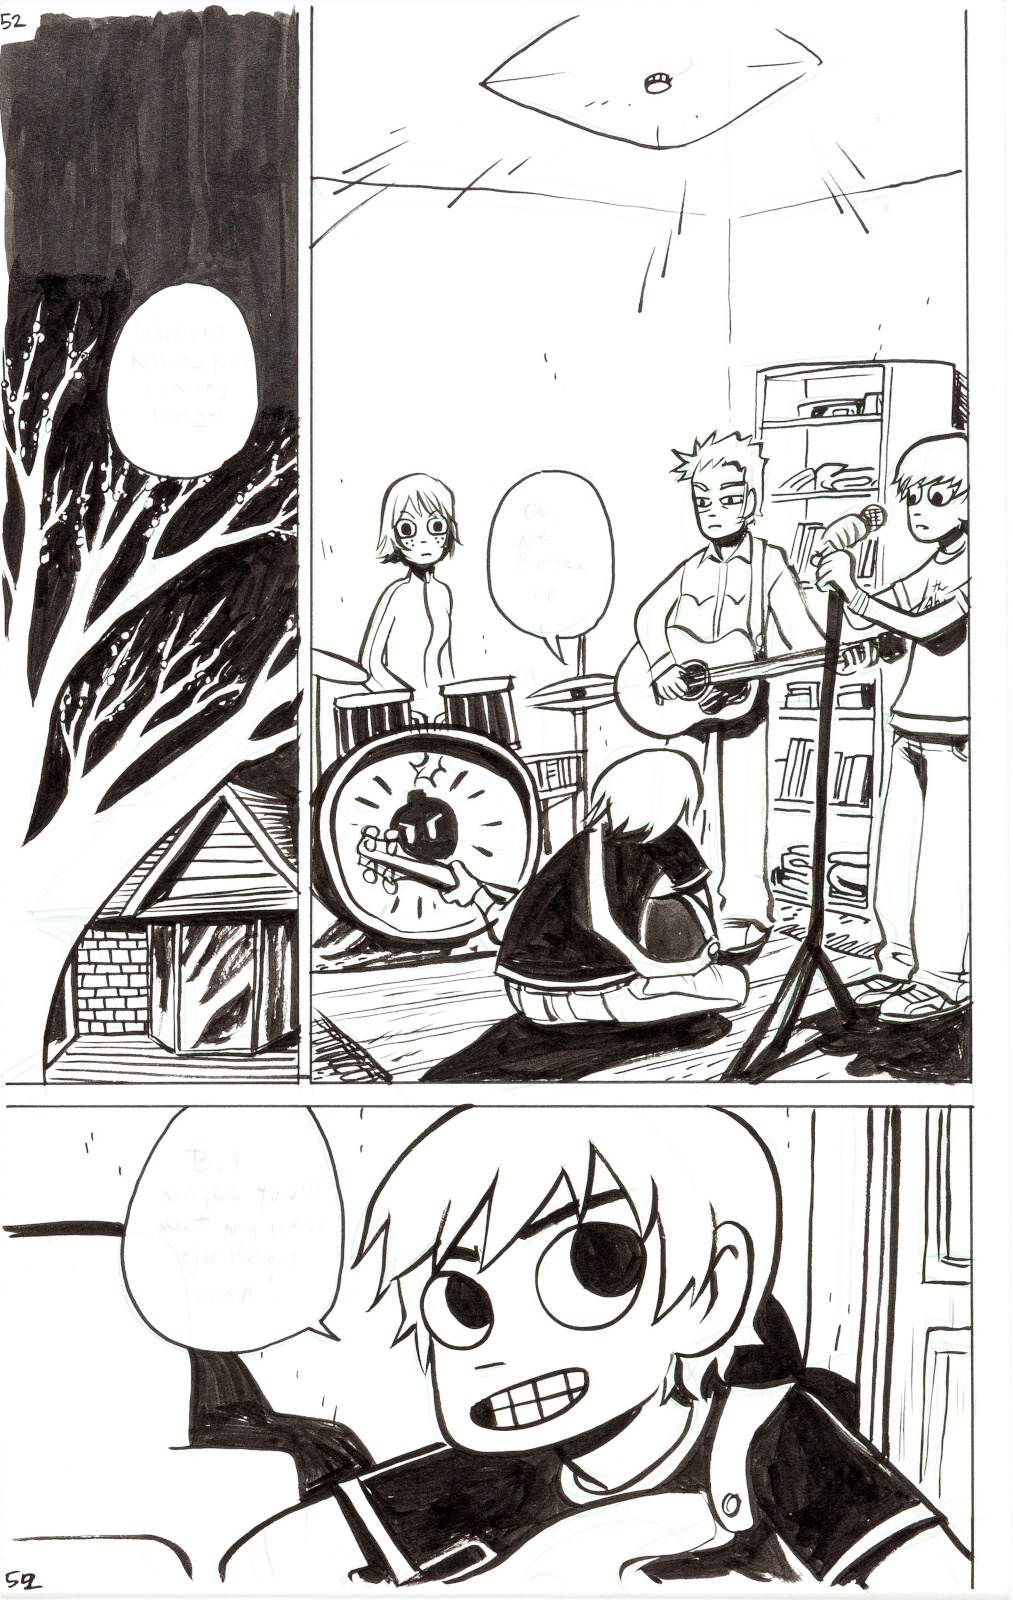 Scott Pilgrim issue 2 page 52 by Bryan Lee OMalley